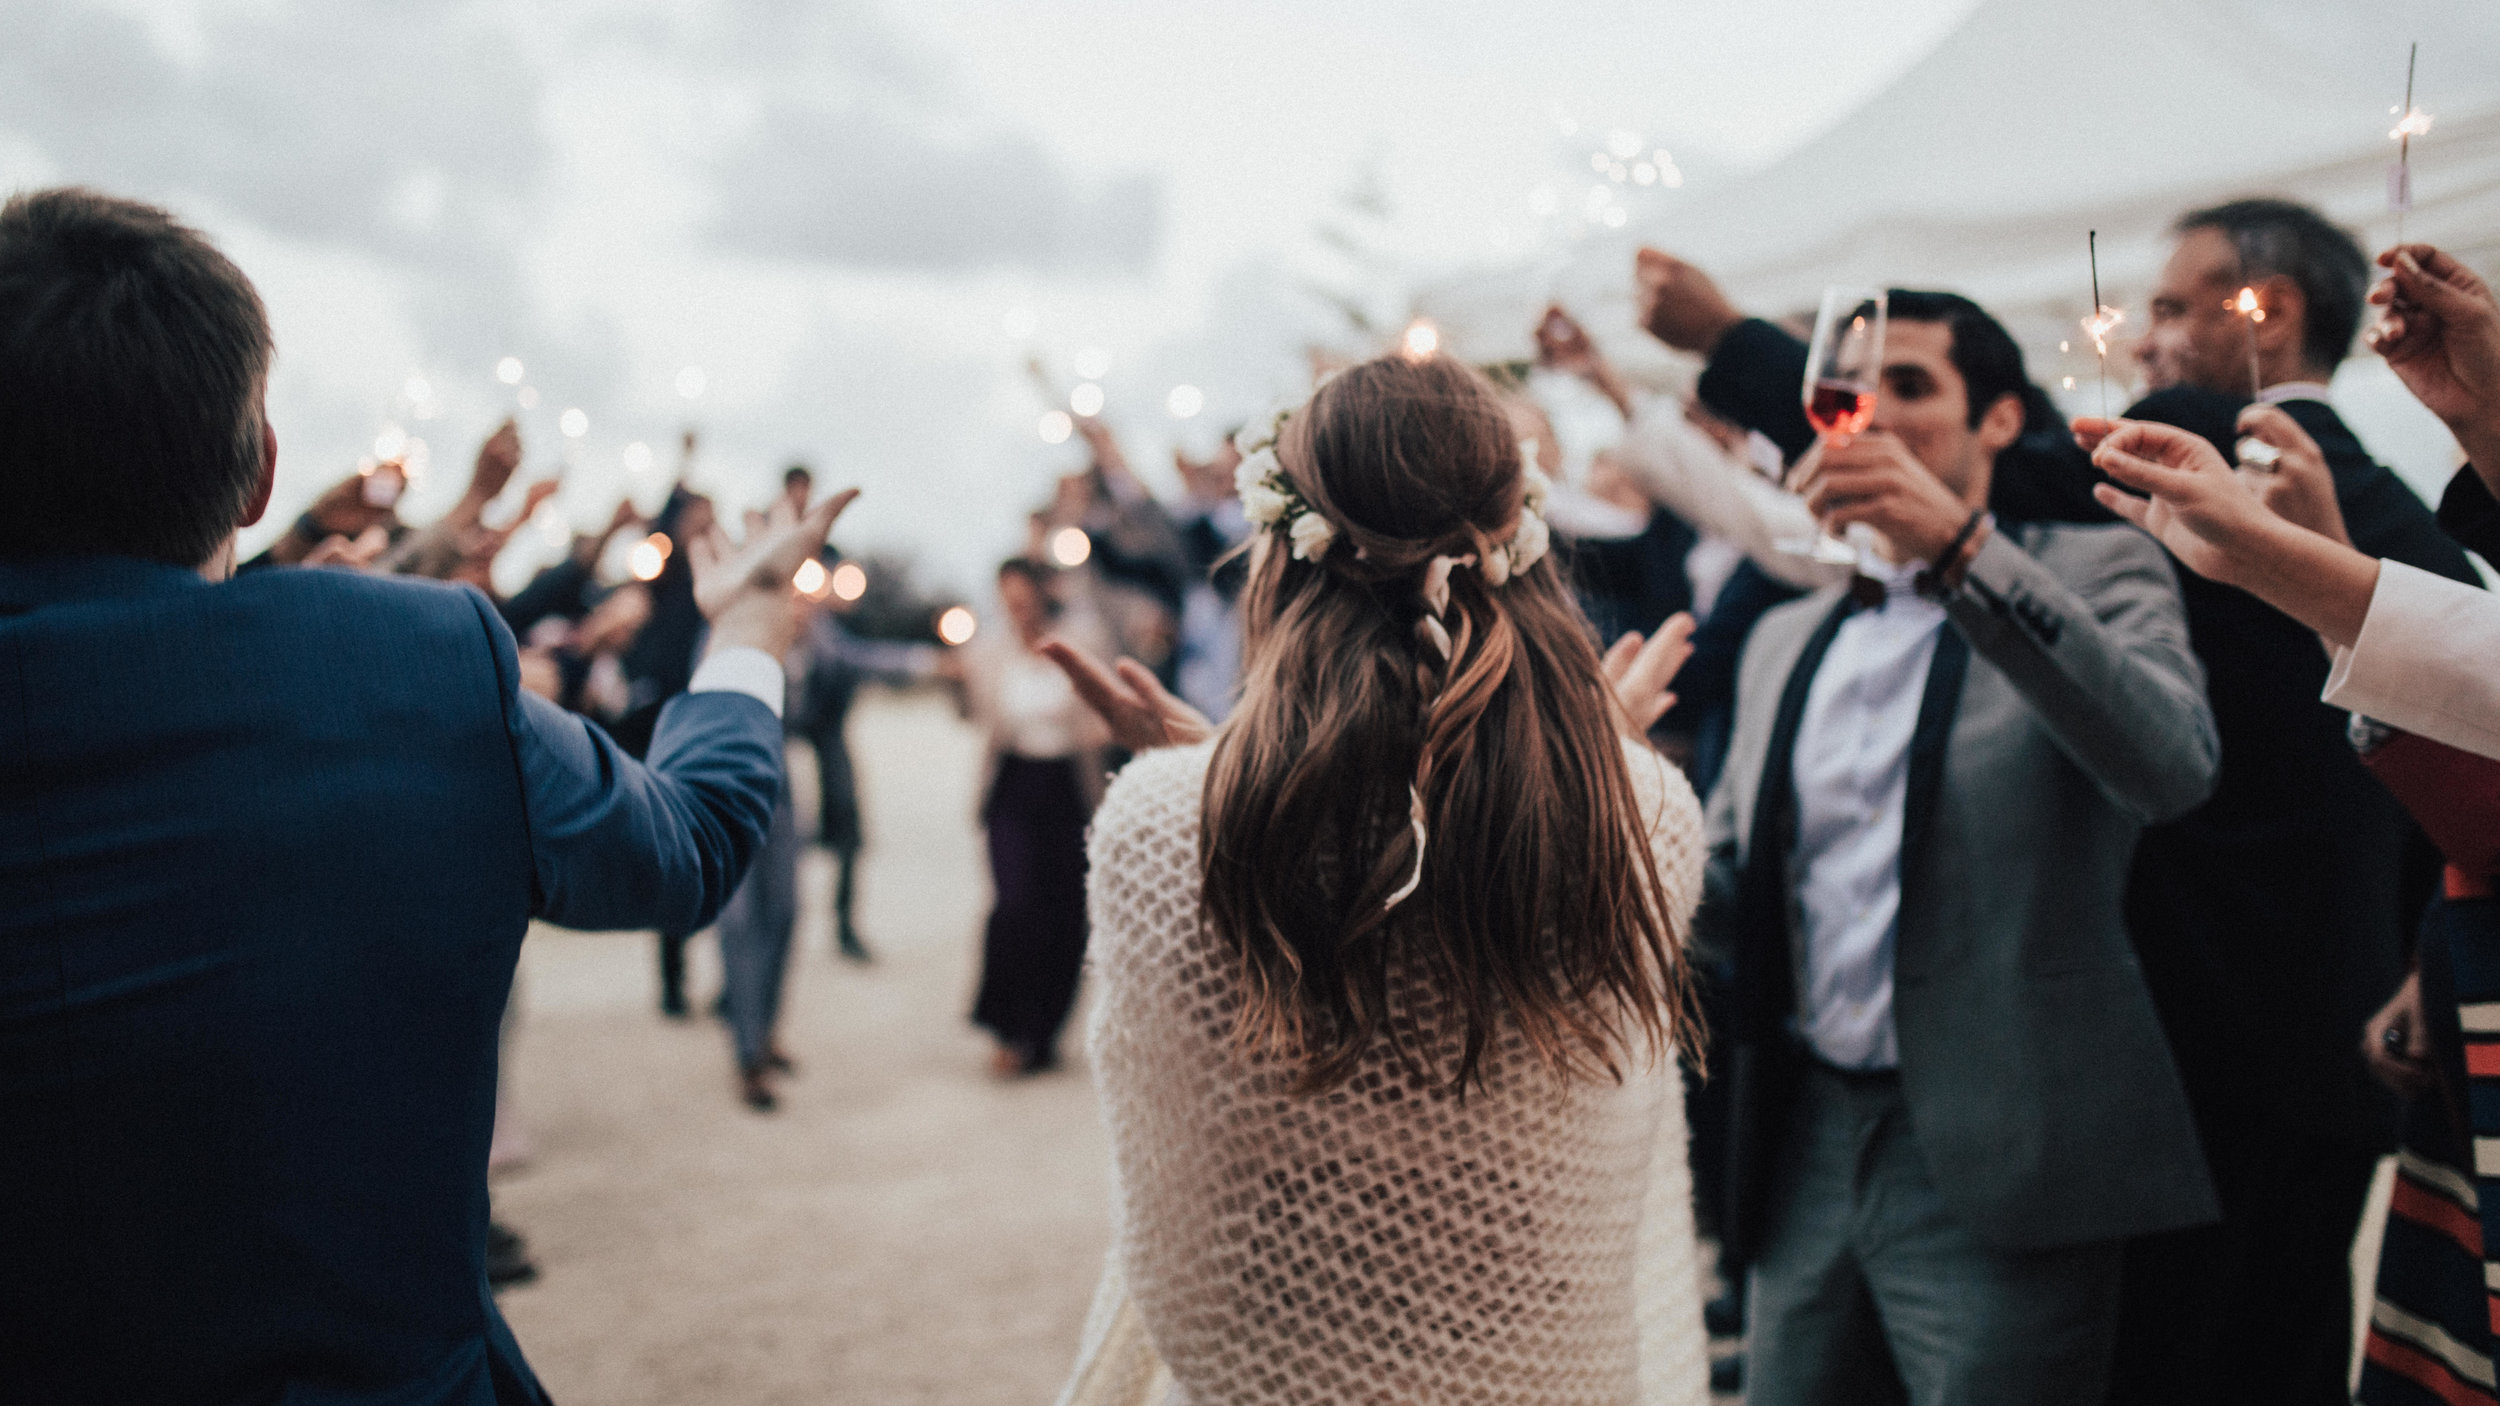 Weddings - Family and friends coming from far and wide. What better way to celebrate than a private party on the water before, after or for your ceremony!We look forward to making your event happen on the bay!